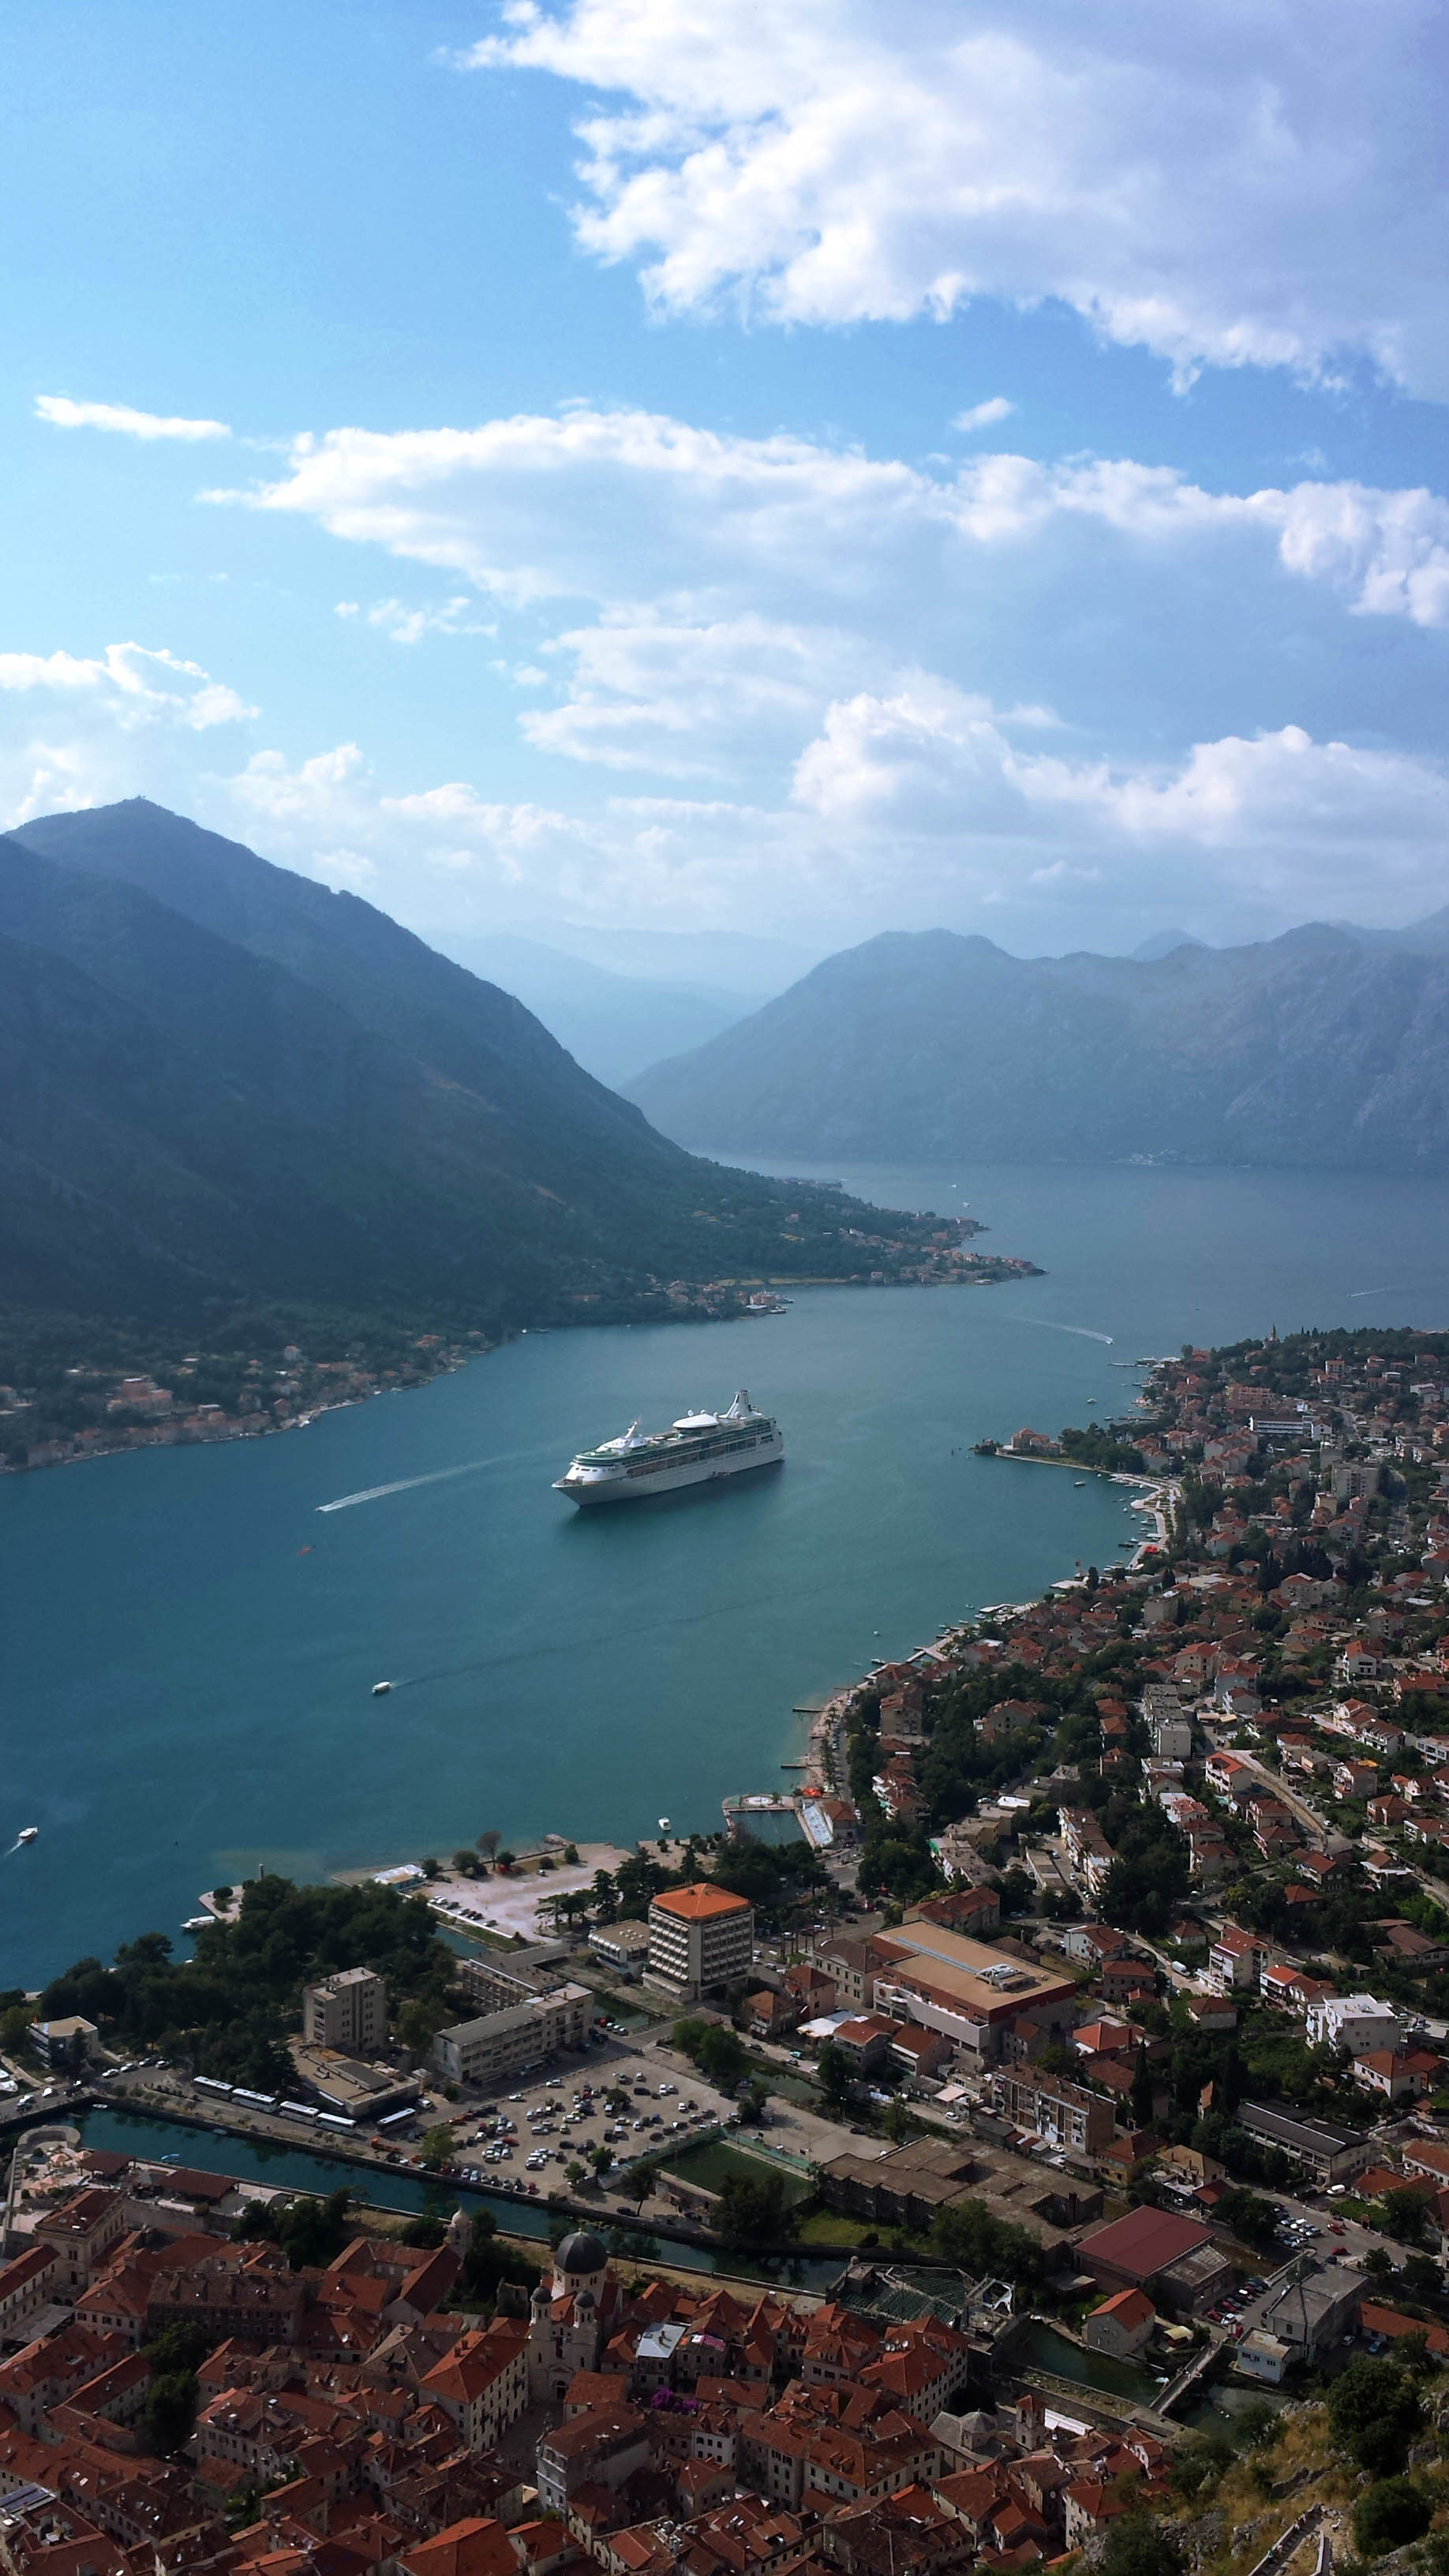 Vision of the Seas anchored in Kotor, Montenegro,